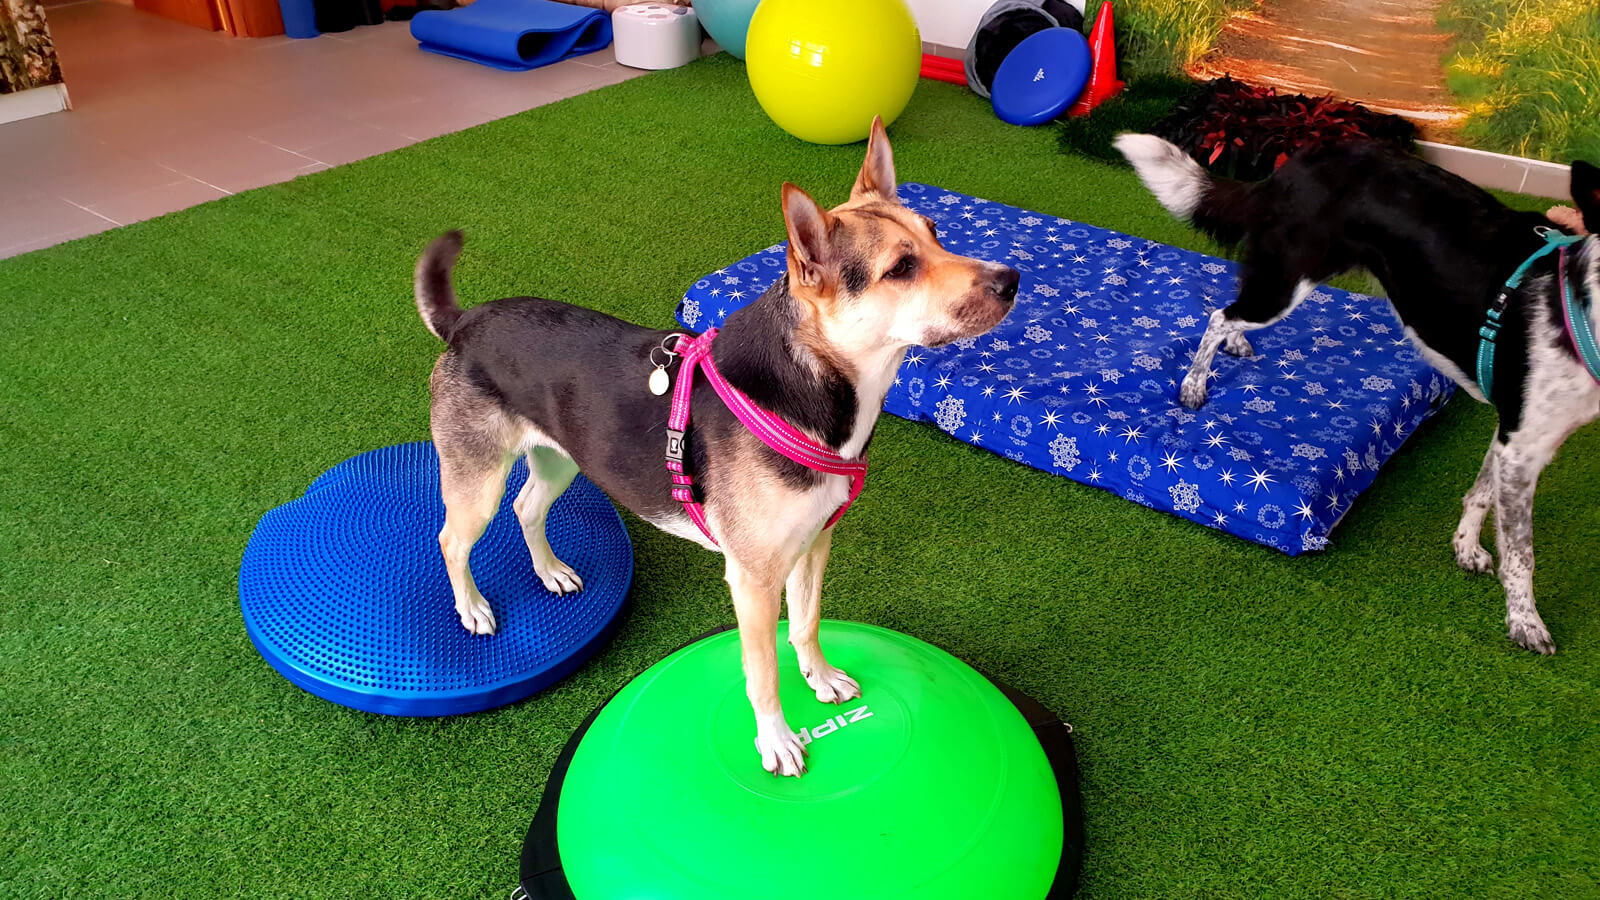 All kind of dogs are following physical rehabilitation sessions at 'Psiruch', from small to big dogs.